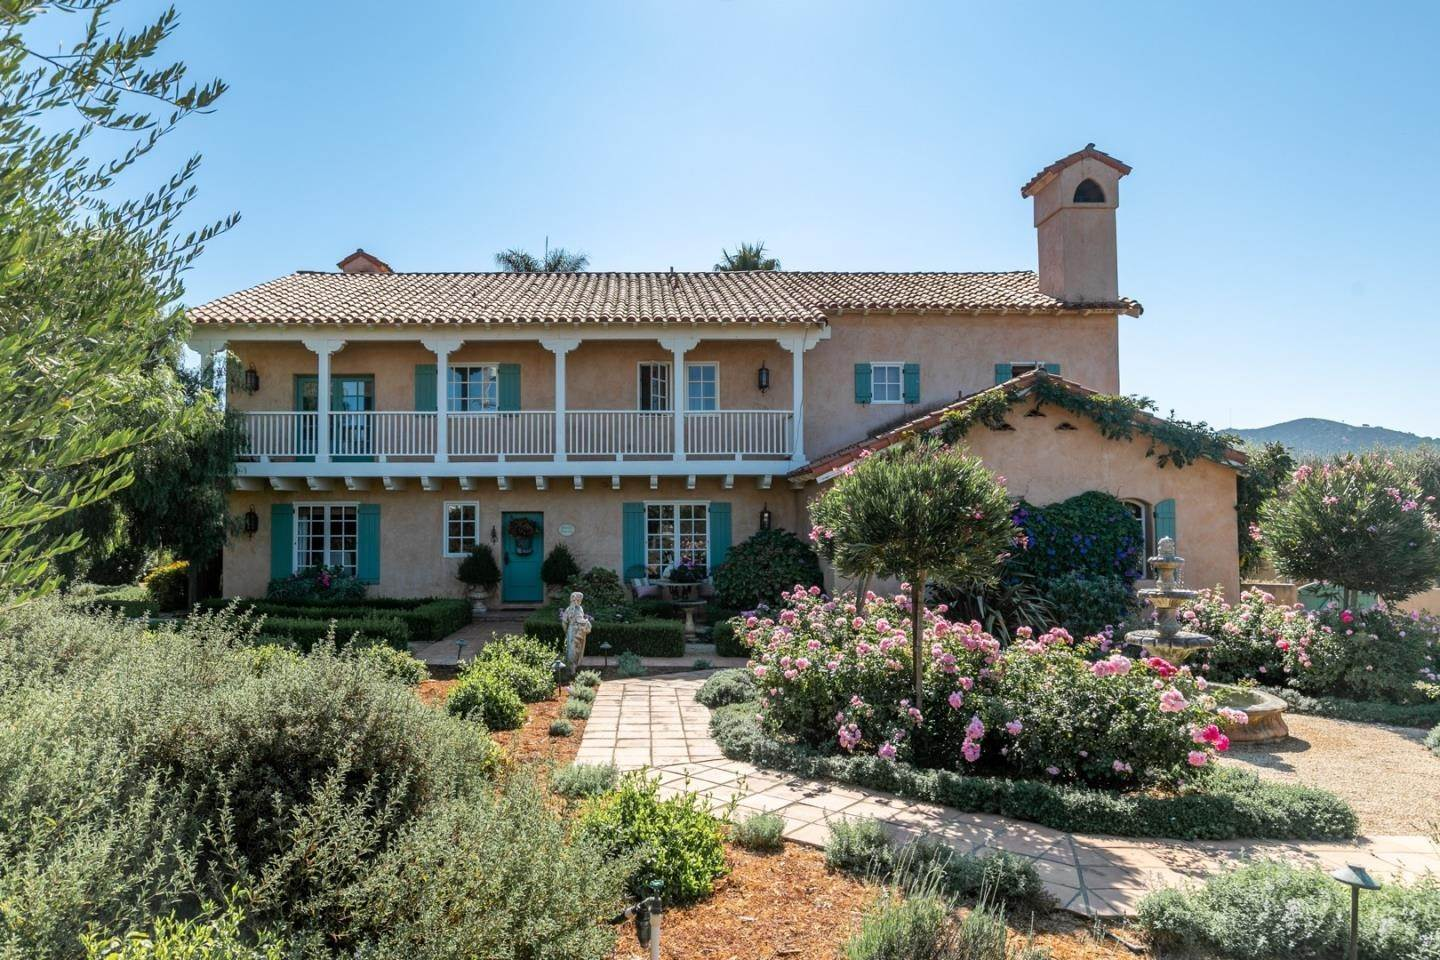 Residential for Sale at 29226 Chualar Canyon Road Chualar, California 93925 United States